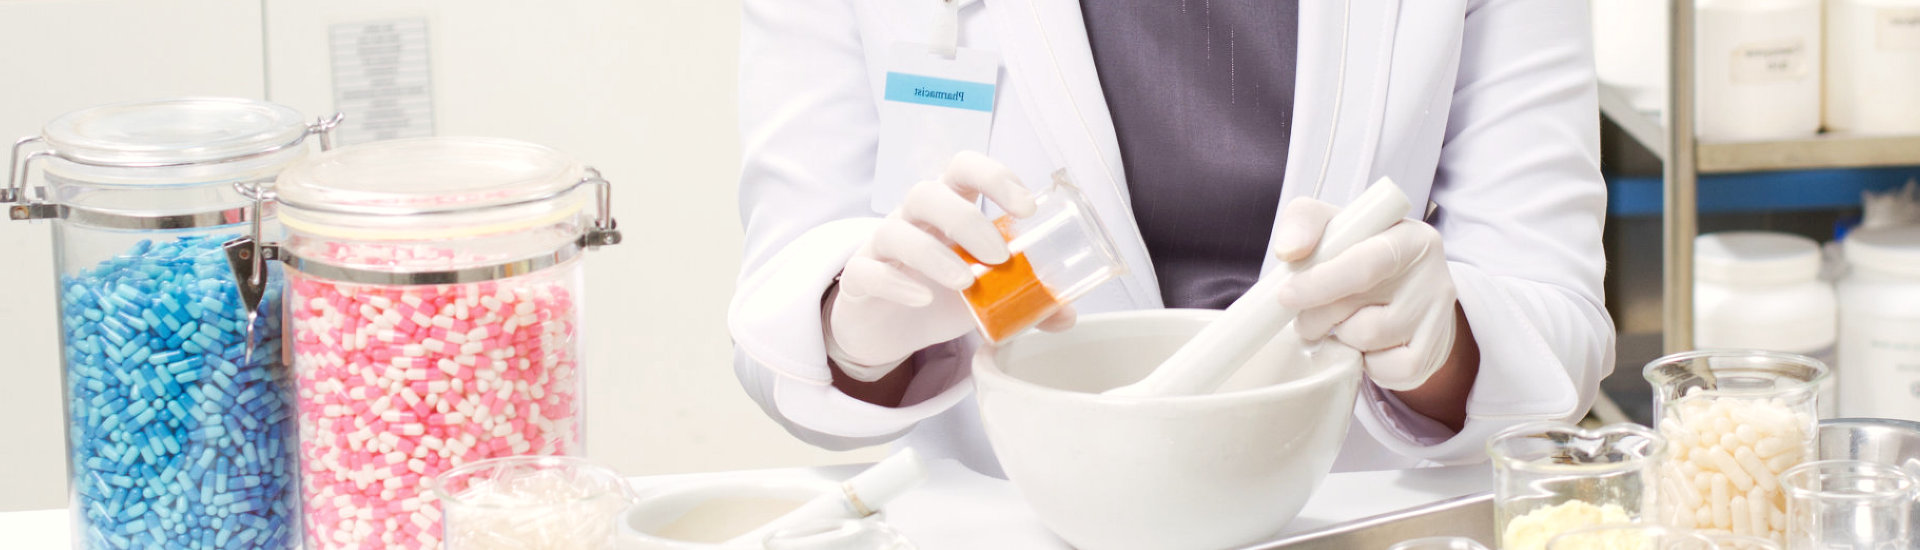 A pharmacist preparing medication with mortar